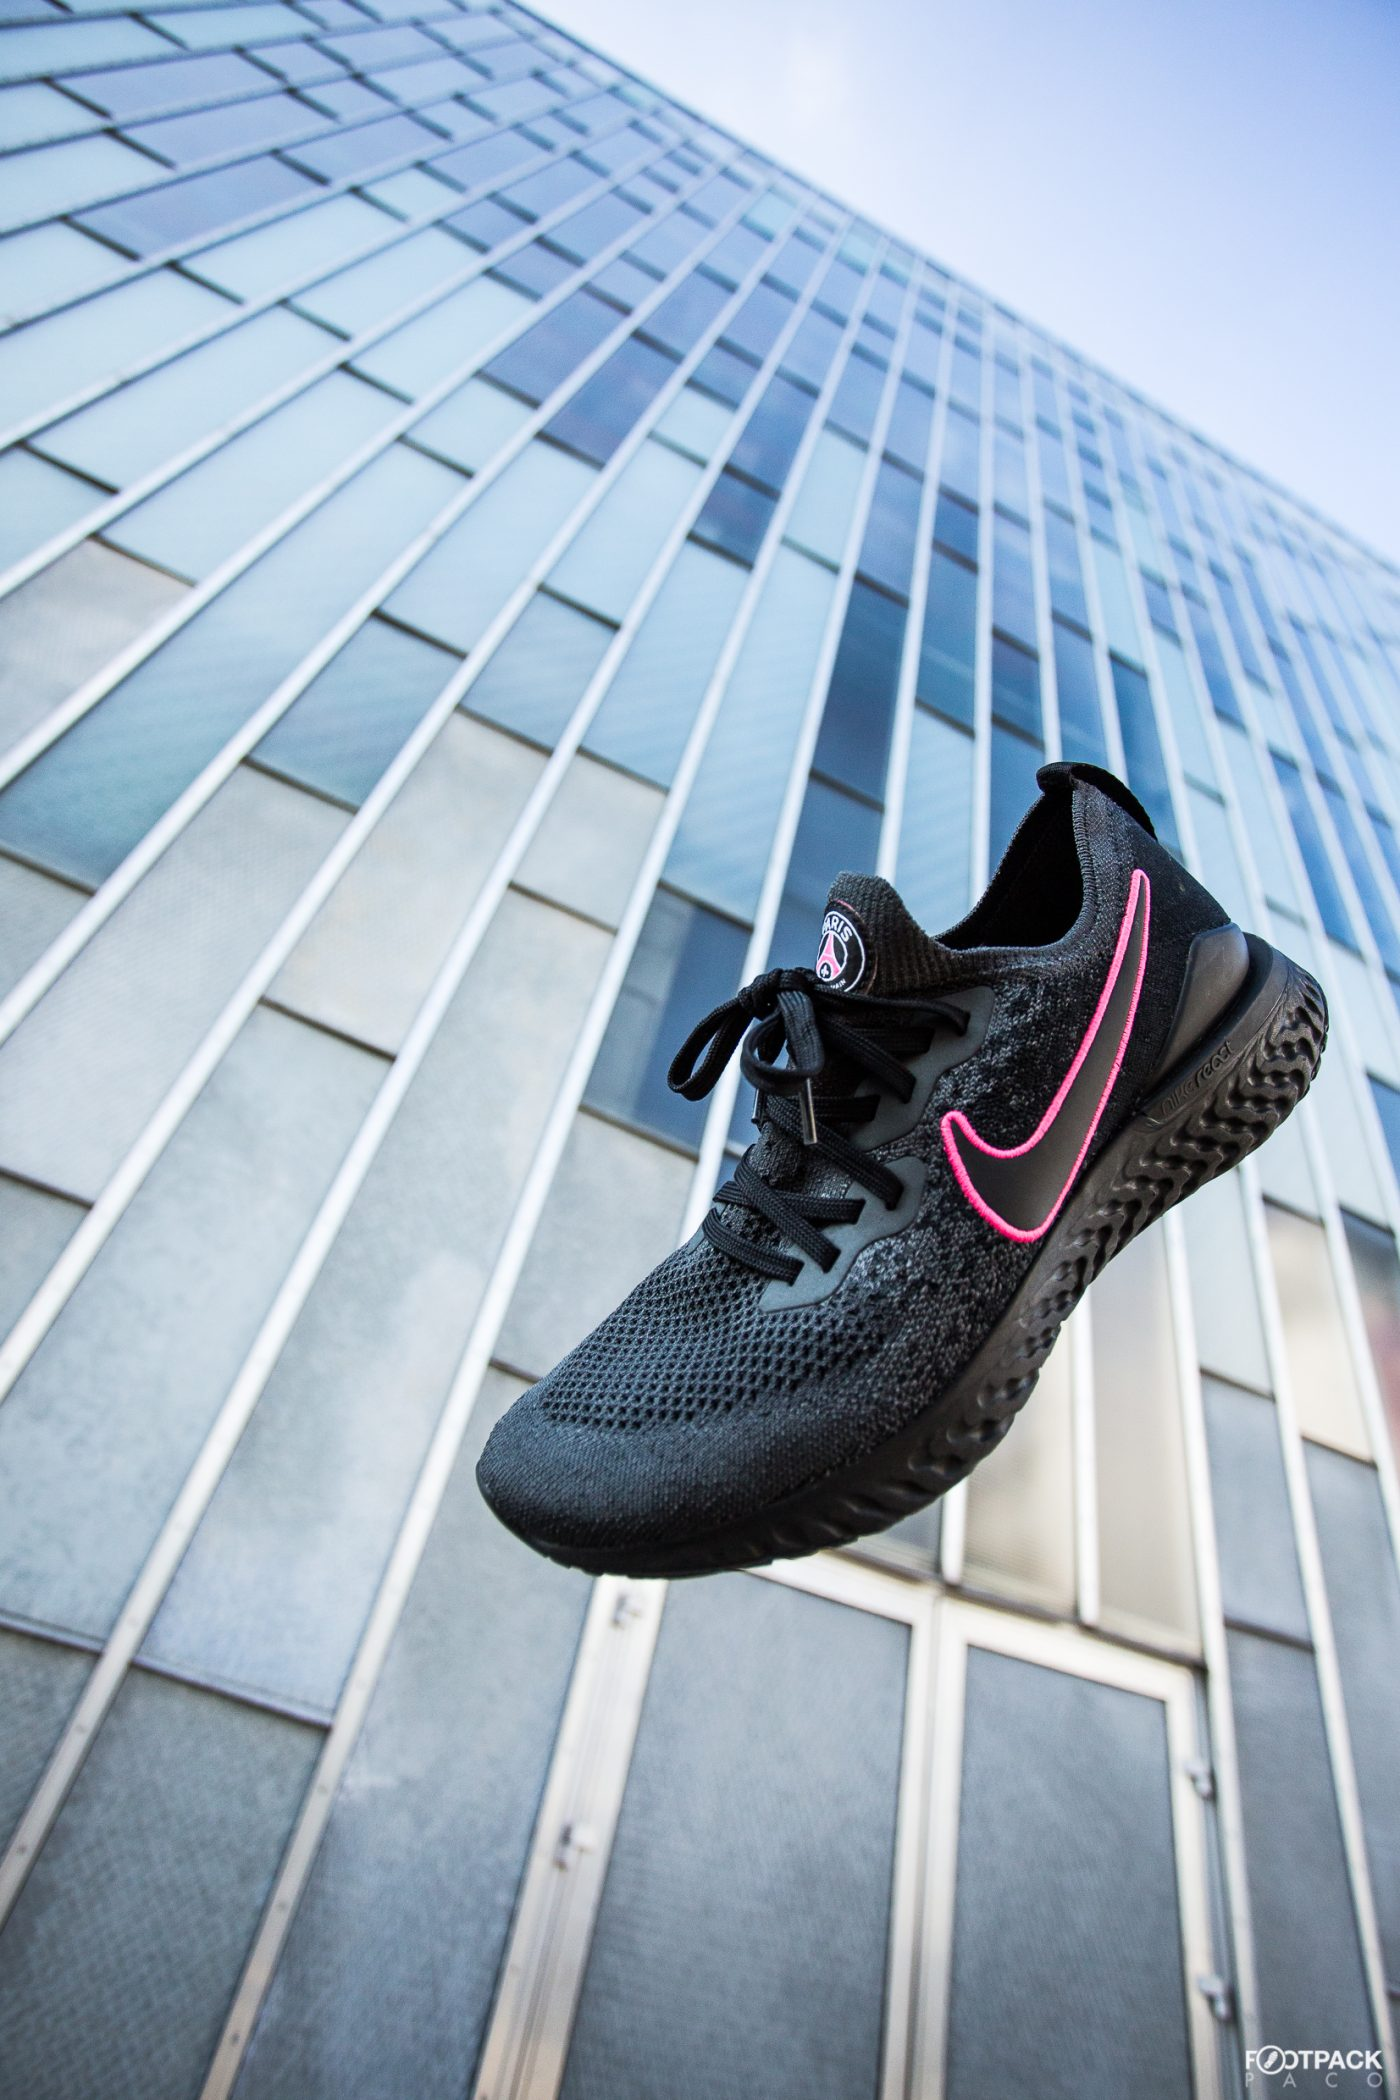 nike-epic-react-flyknit-paris-saint-germain-16